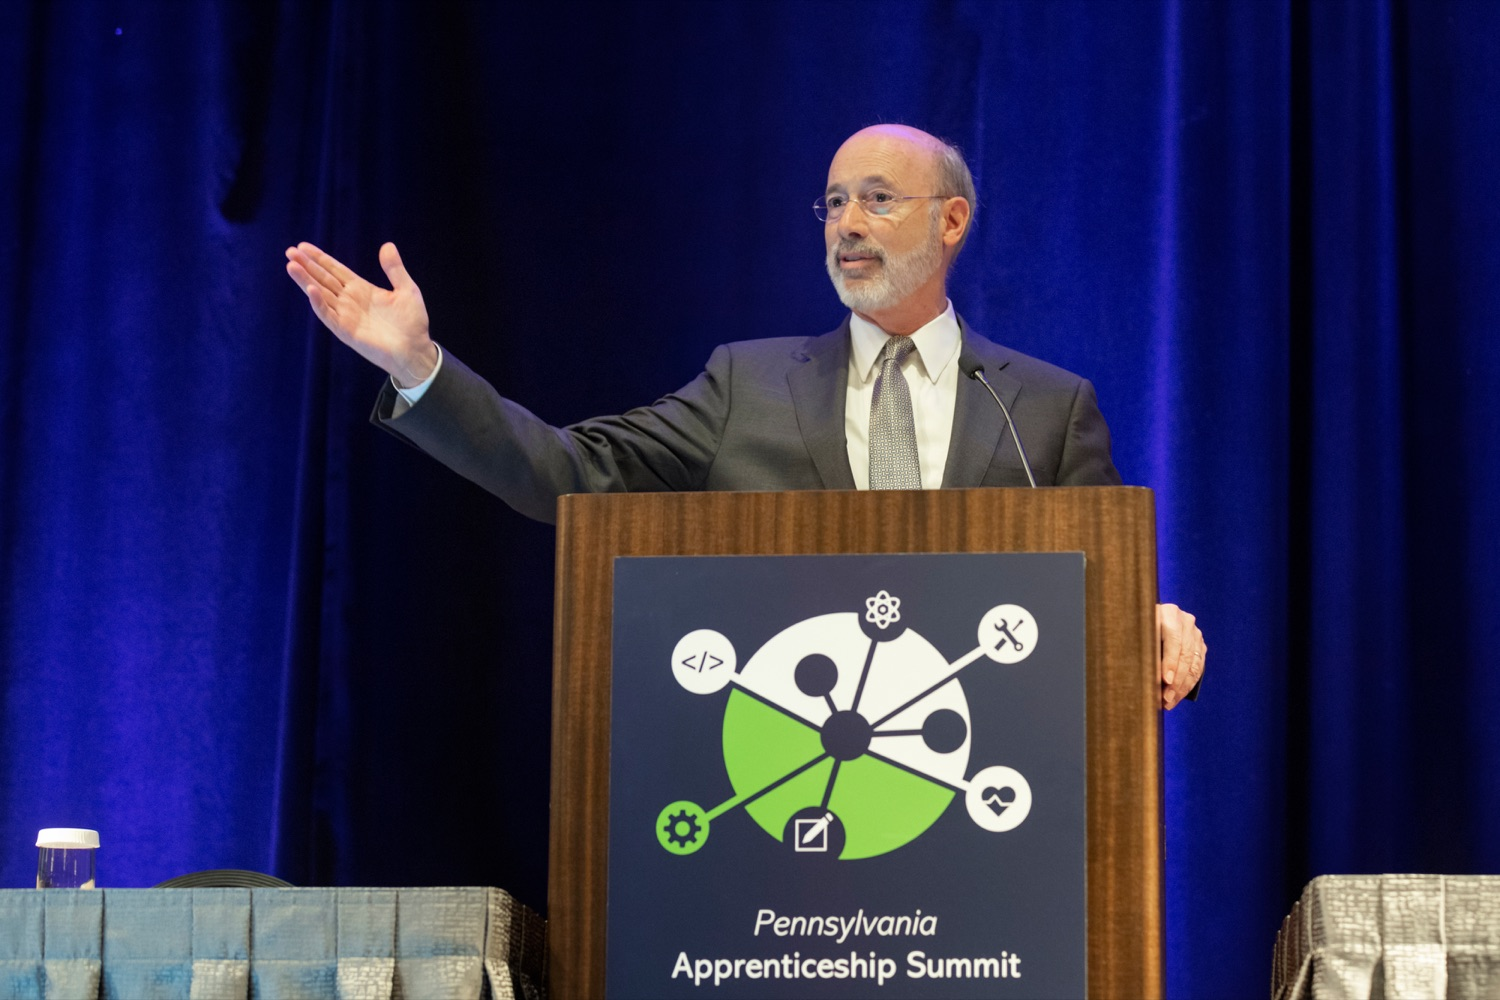 "<a href=""http://filesource.abacast.com/commonwealthofpa/photo/17520_LandI_Apprenticeships_NK_002.JPG"" target=""_blank"">⇣ Download Photo<br></a>Pennsylvania Governor Tom Wolf speaks during the 2019 Pennsylvania Apprenticeship Summit at Hershey Lodge on Thursday, October 31, 2019."